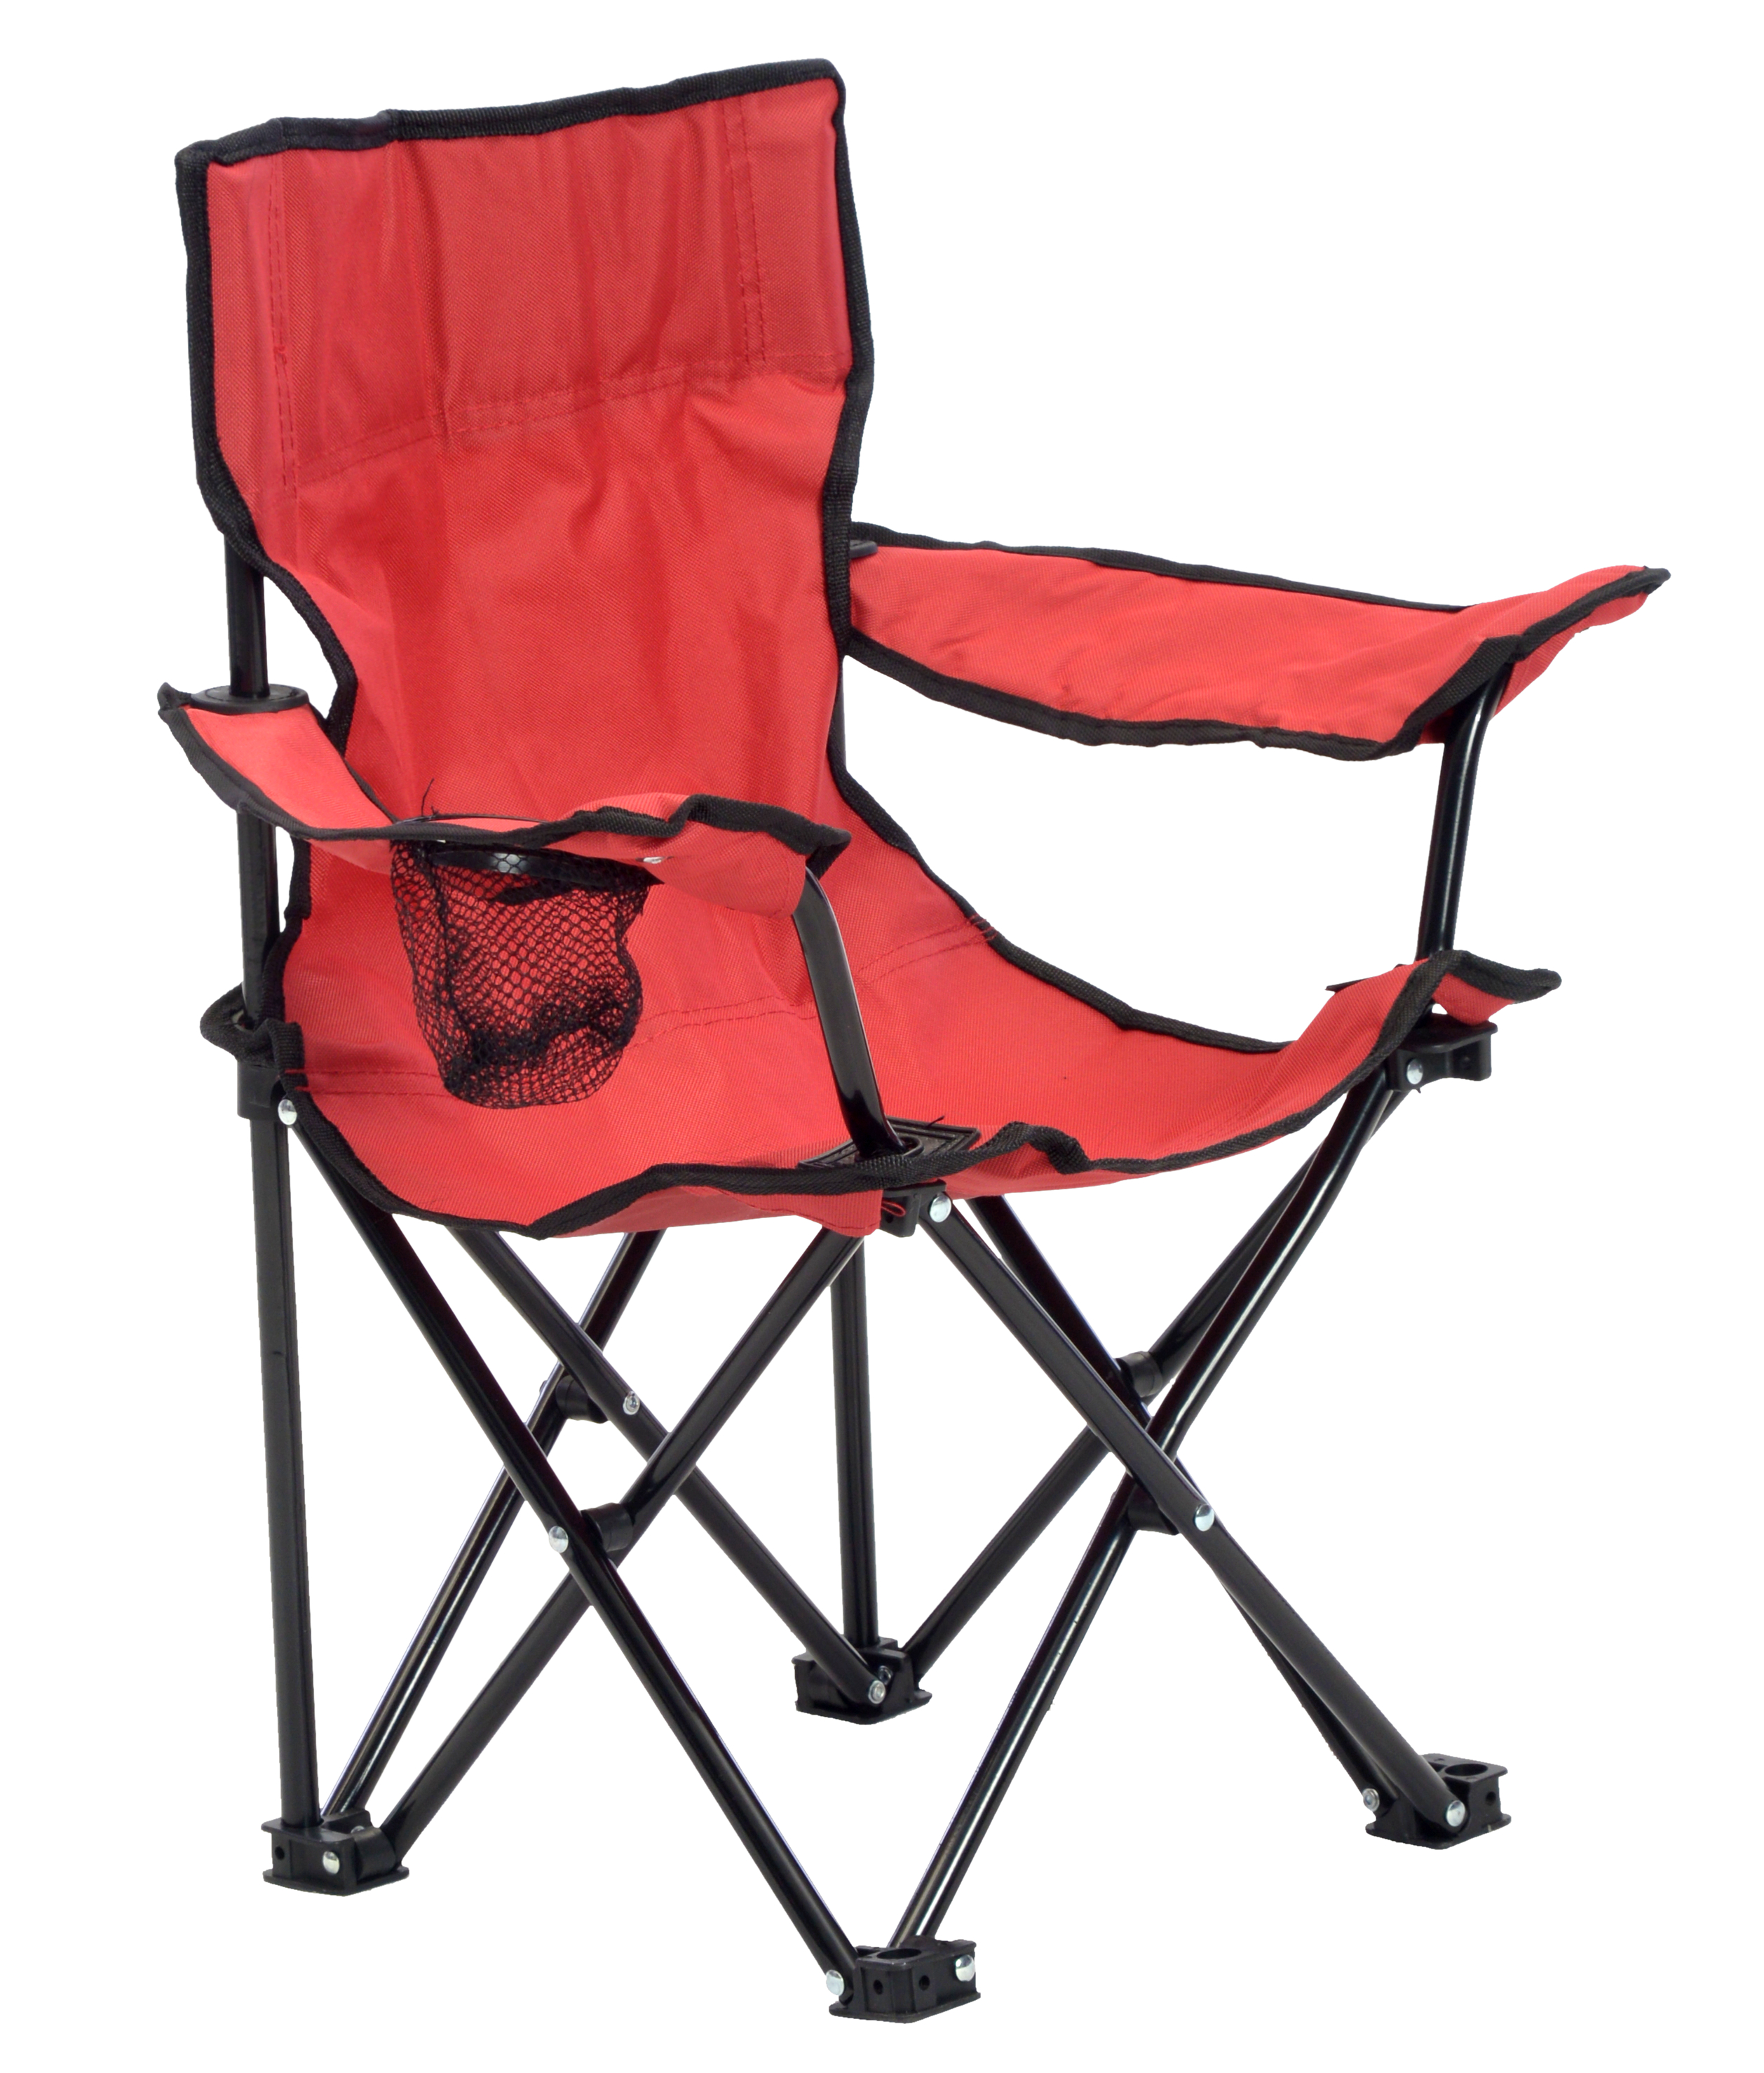 KIDS CHAIR RED/BLACK